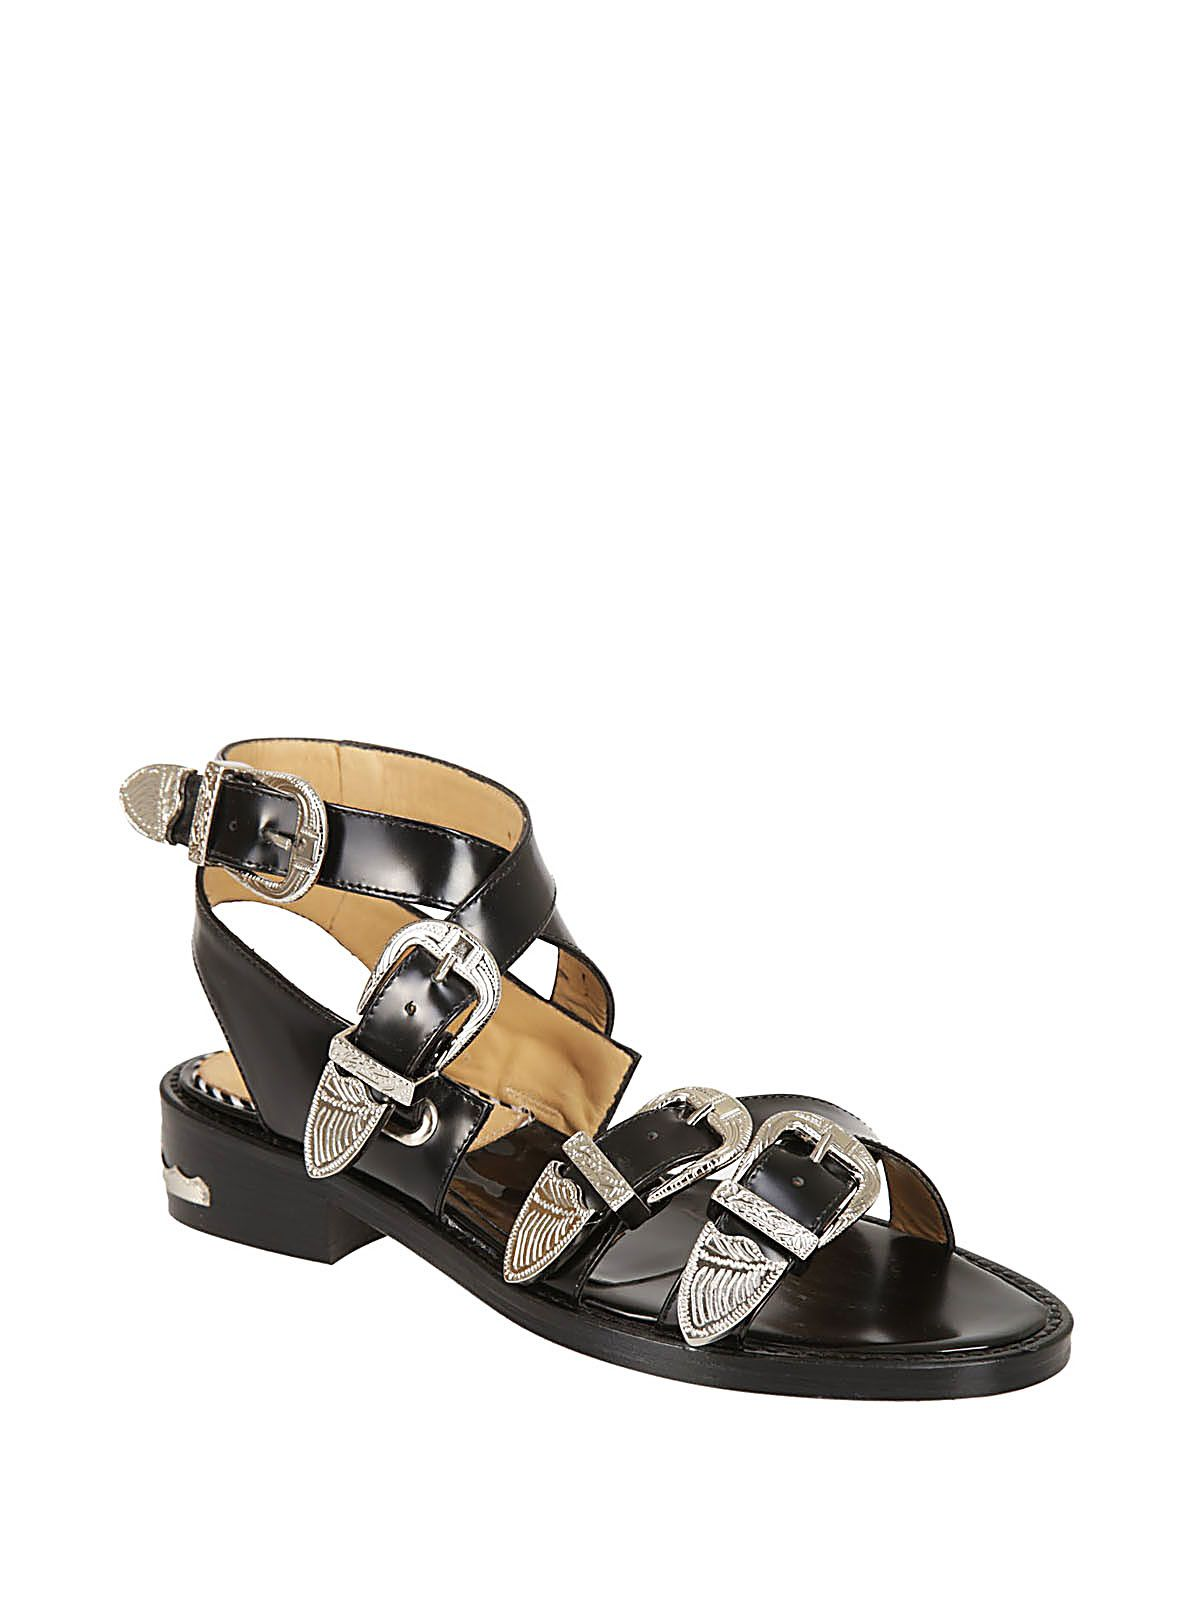 Toga Pulla buckle strapped shoes 100% original online GyGPal7V